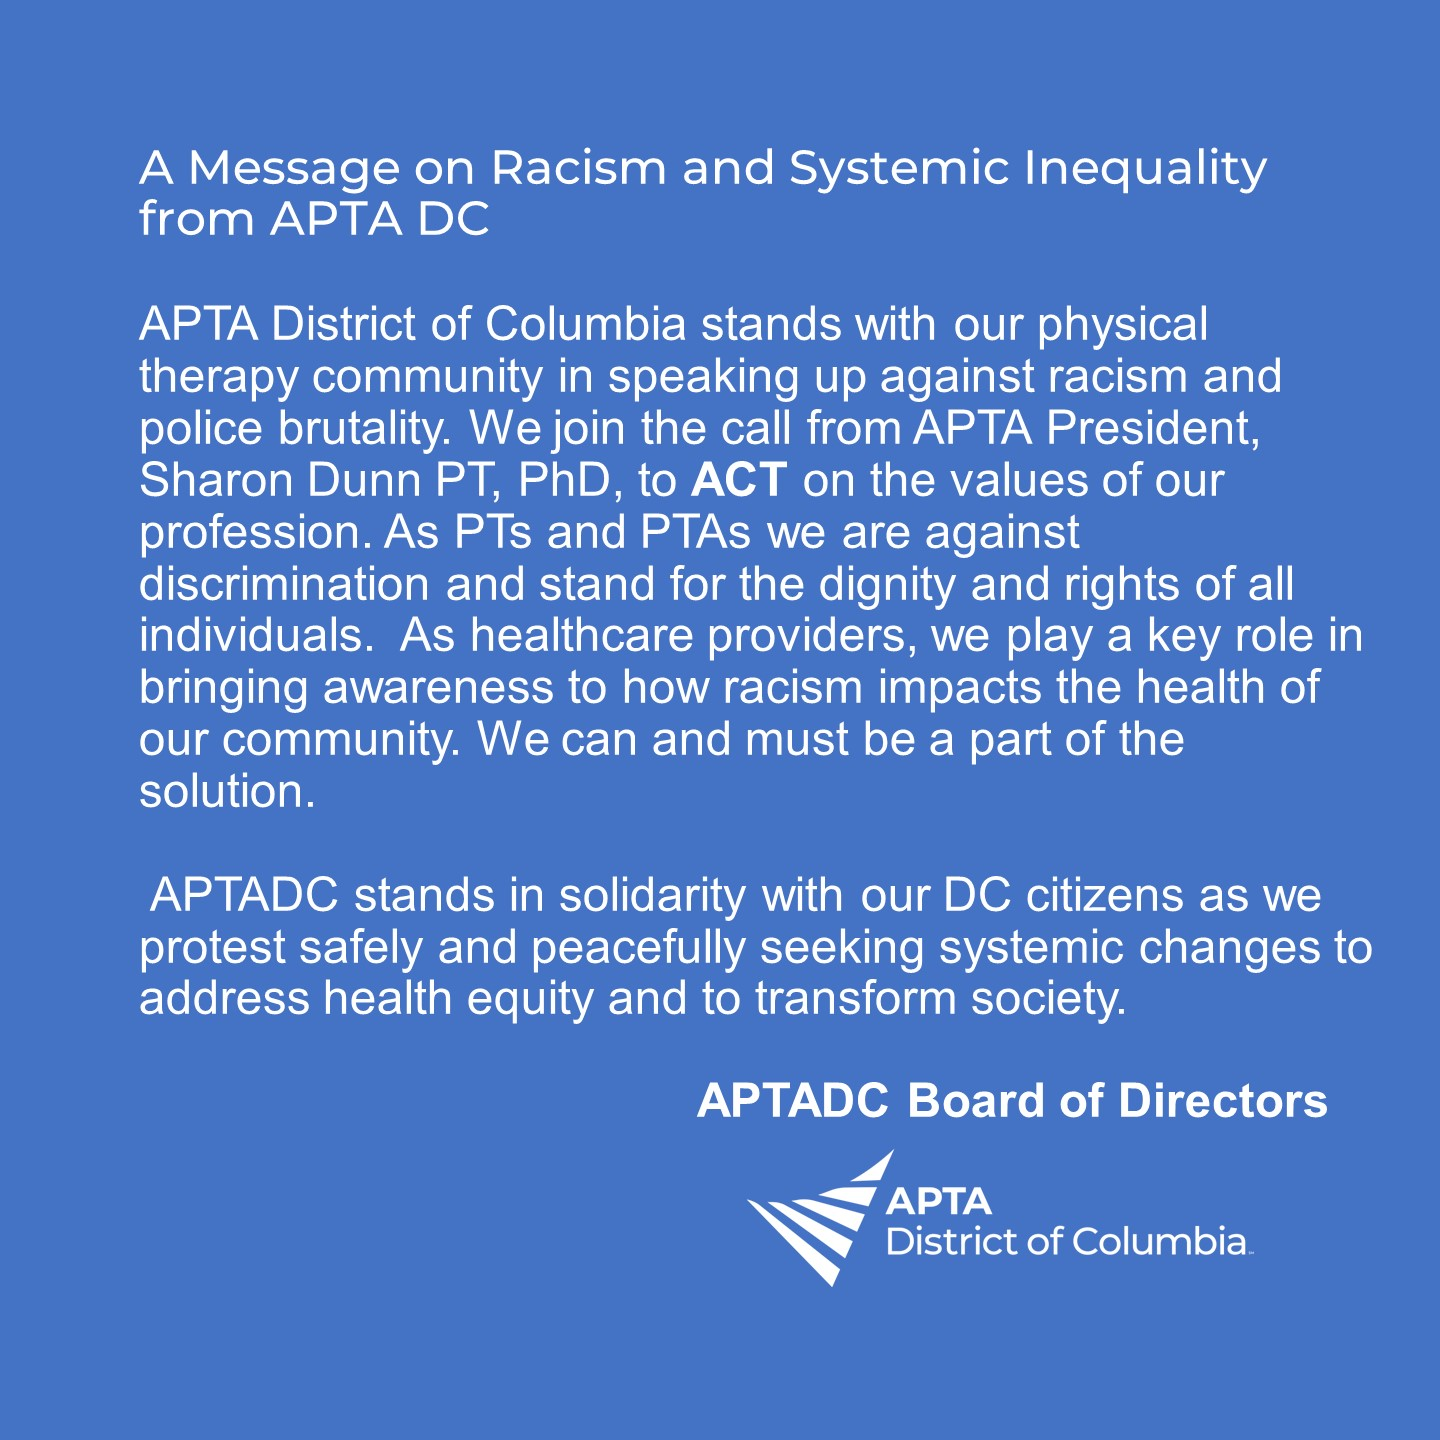 A Message on Racism and Systemic InequalityWeb